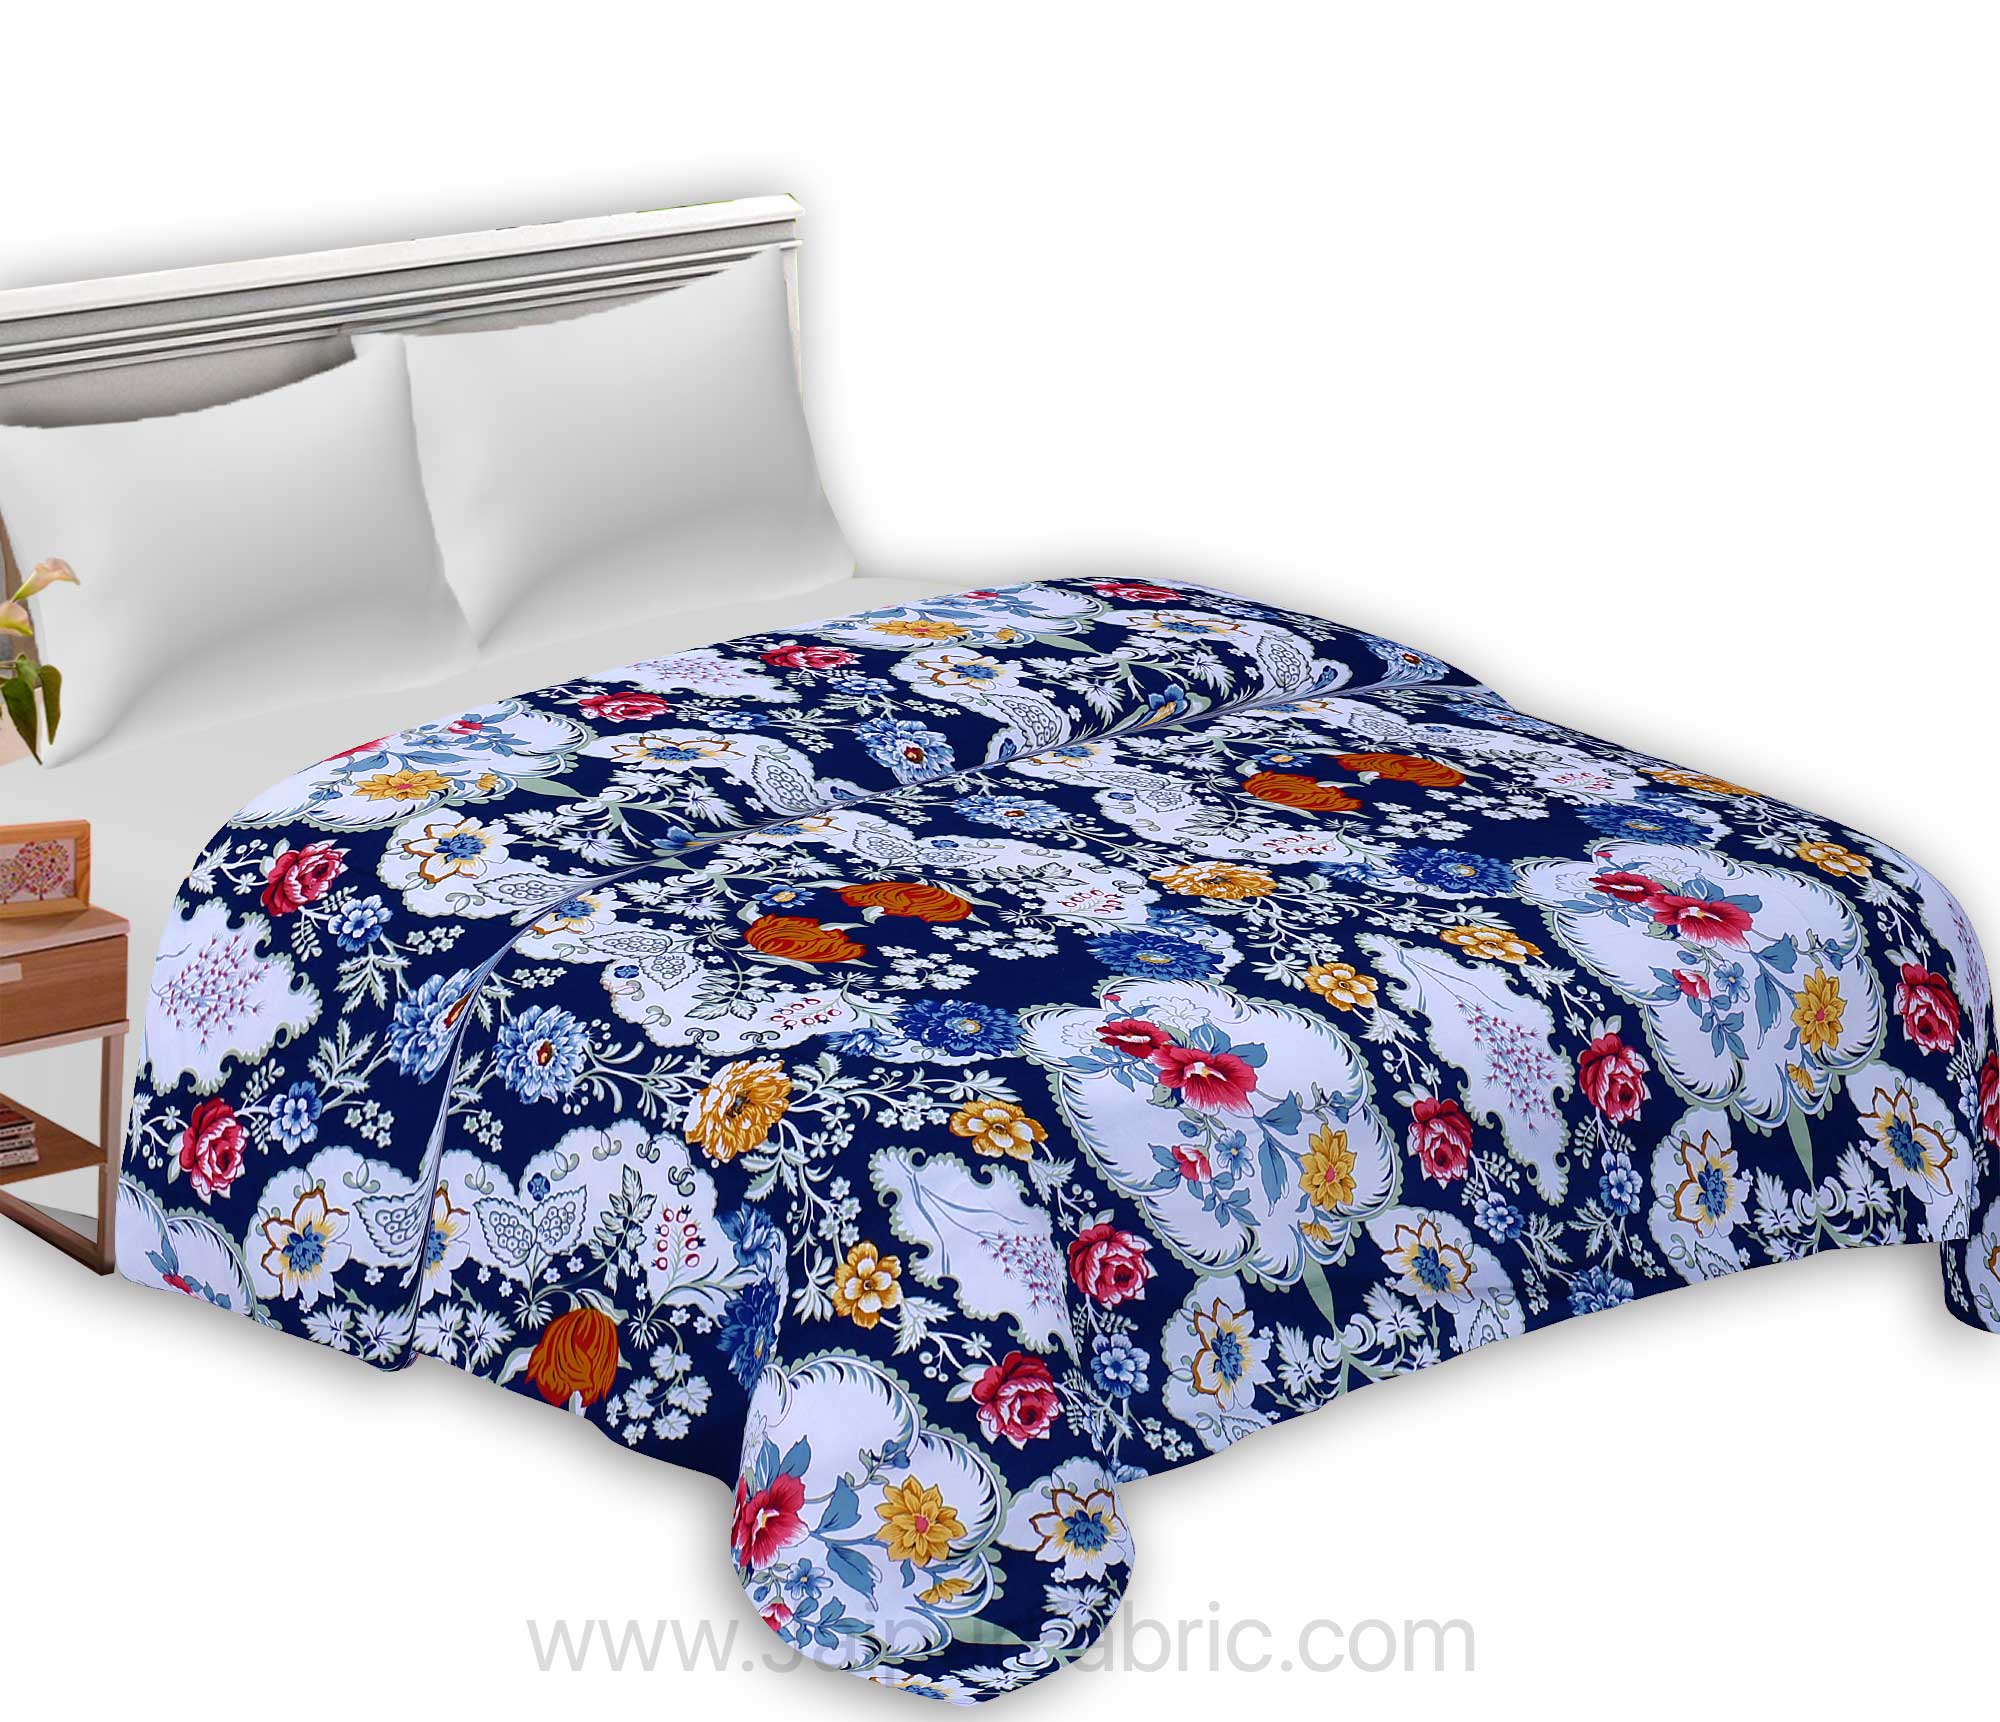 Micro Cotton Navy Blue Decorative Reversible Double Blanket/Duvet/Quilt/AC Dohar